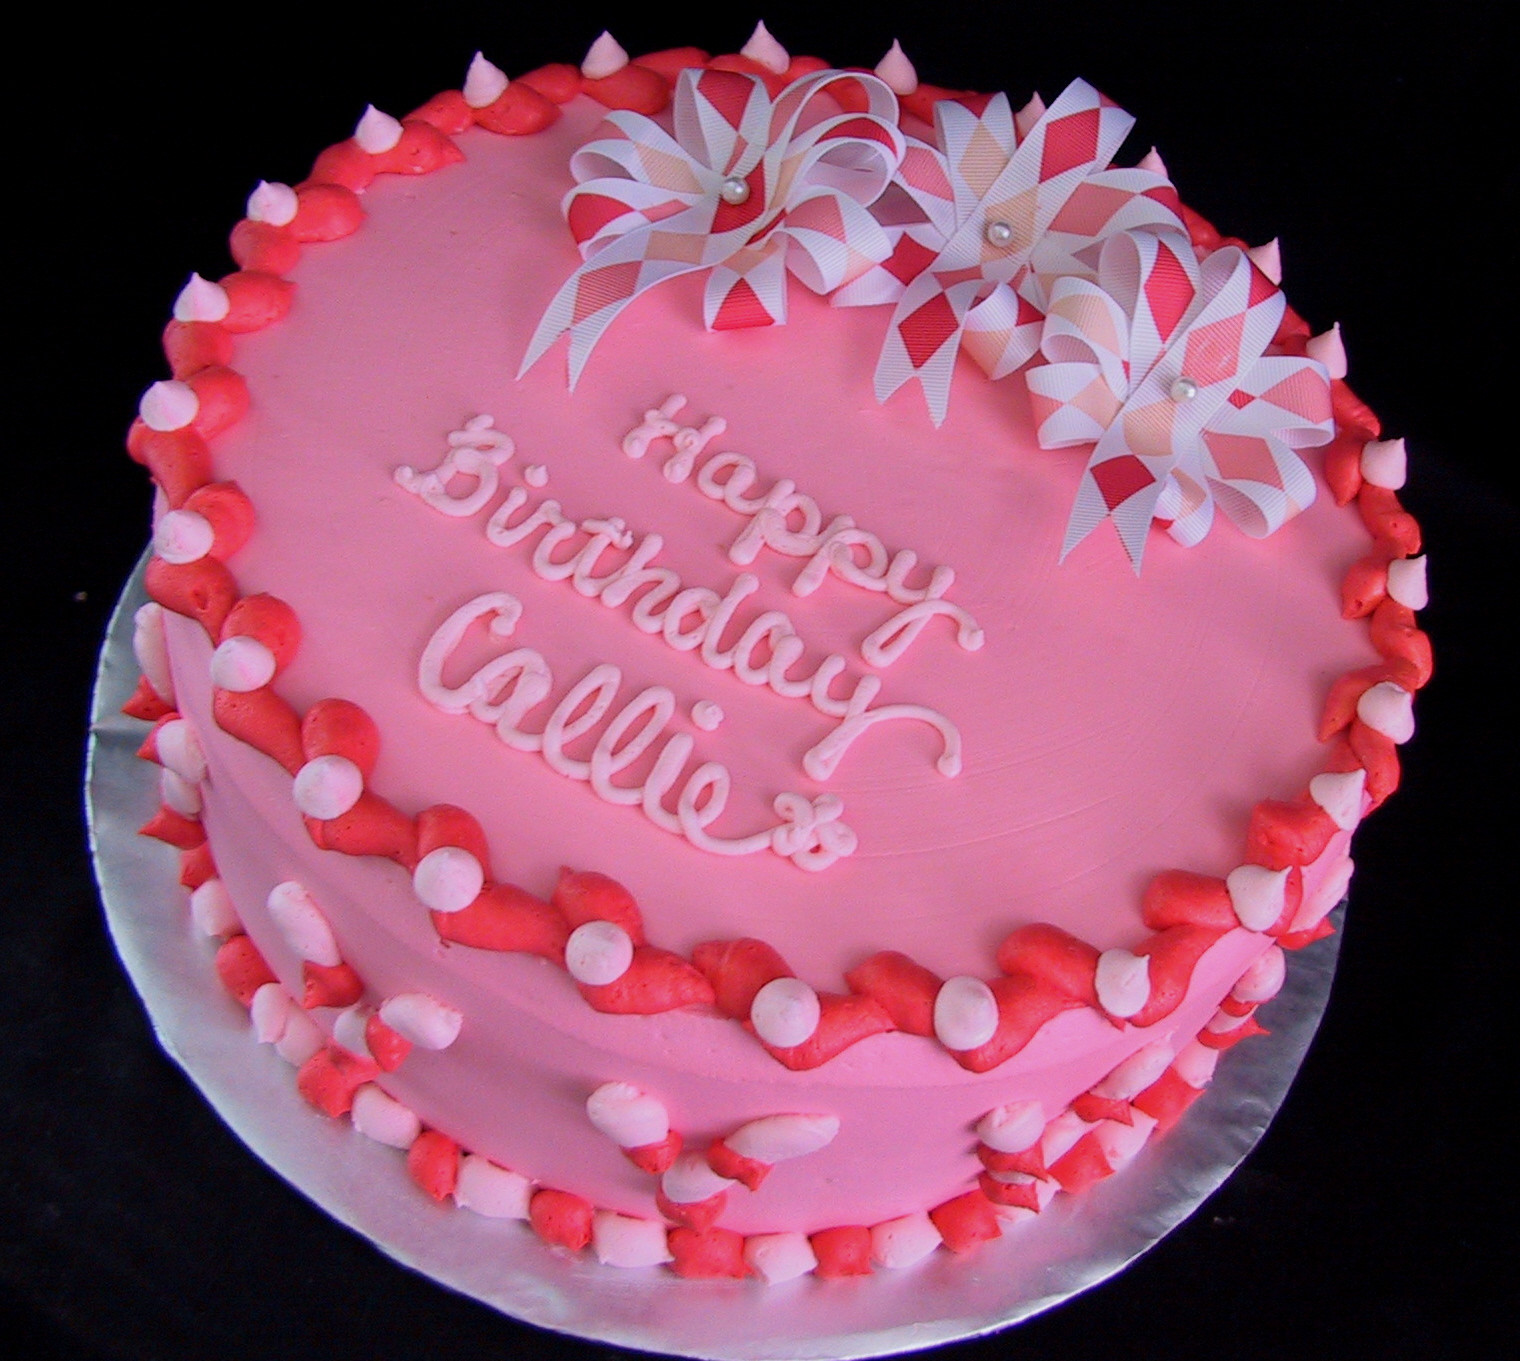 Best ideas about Pink Birthday Cake . Save or Pin Kentucky The Twisted Sifter Now.